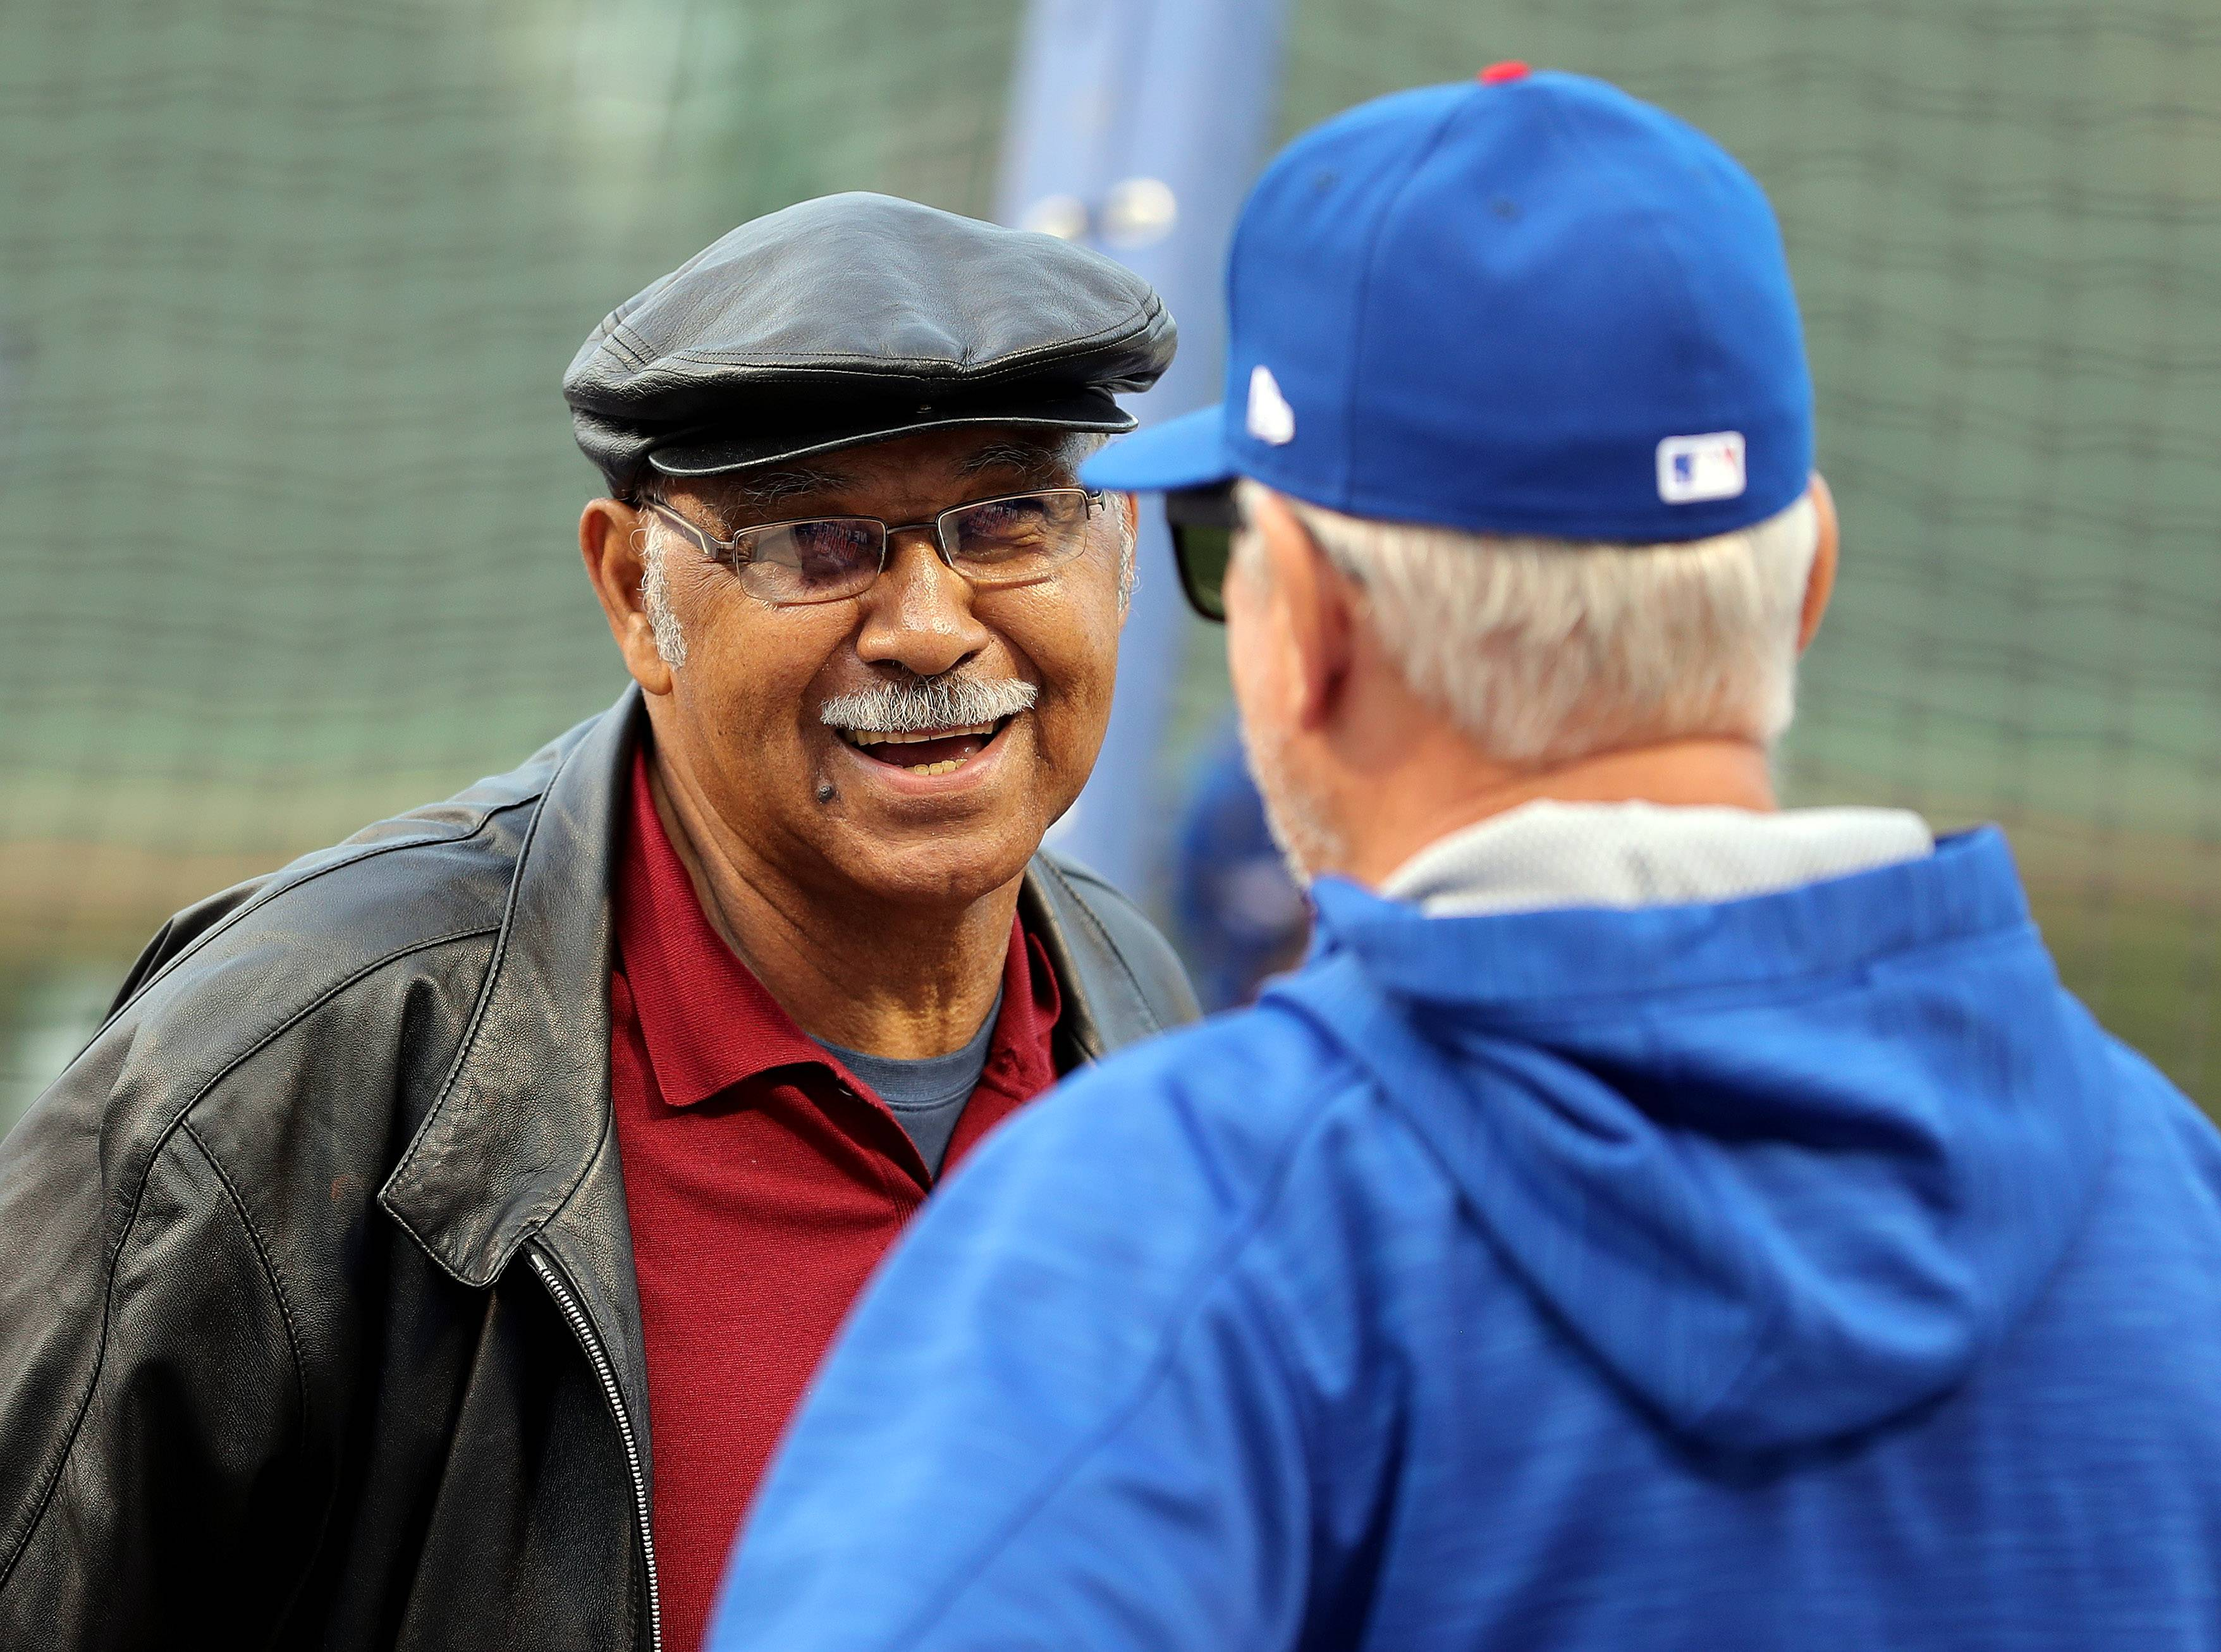 Steve Lundy/slundy@dailyherald.com Former Cub Billy Williams, left, talks with Chicago Cubs manager Joe Maddon during game 1 of the National League championship series against the Los Angeles Dodgers at Wrigley Field in Chicago on Saturday, October, 15, 2016.